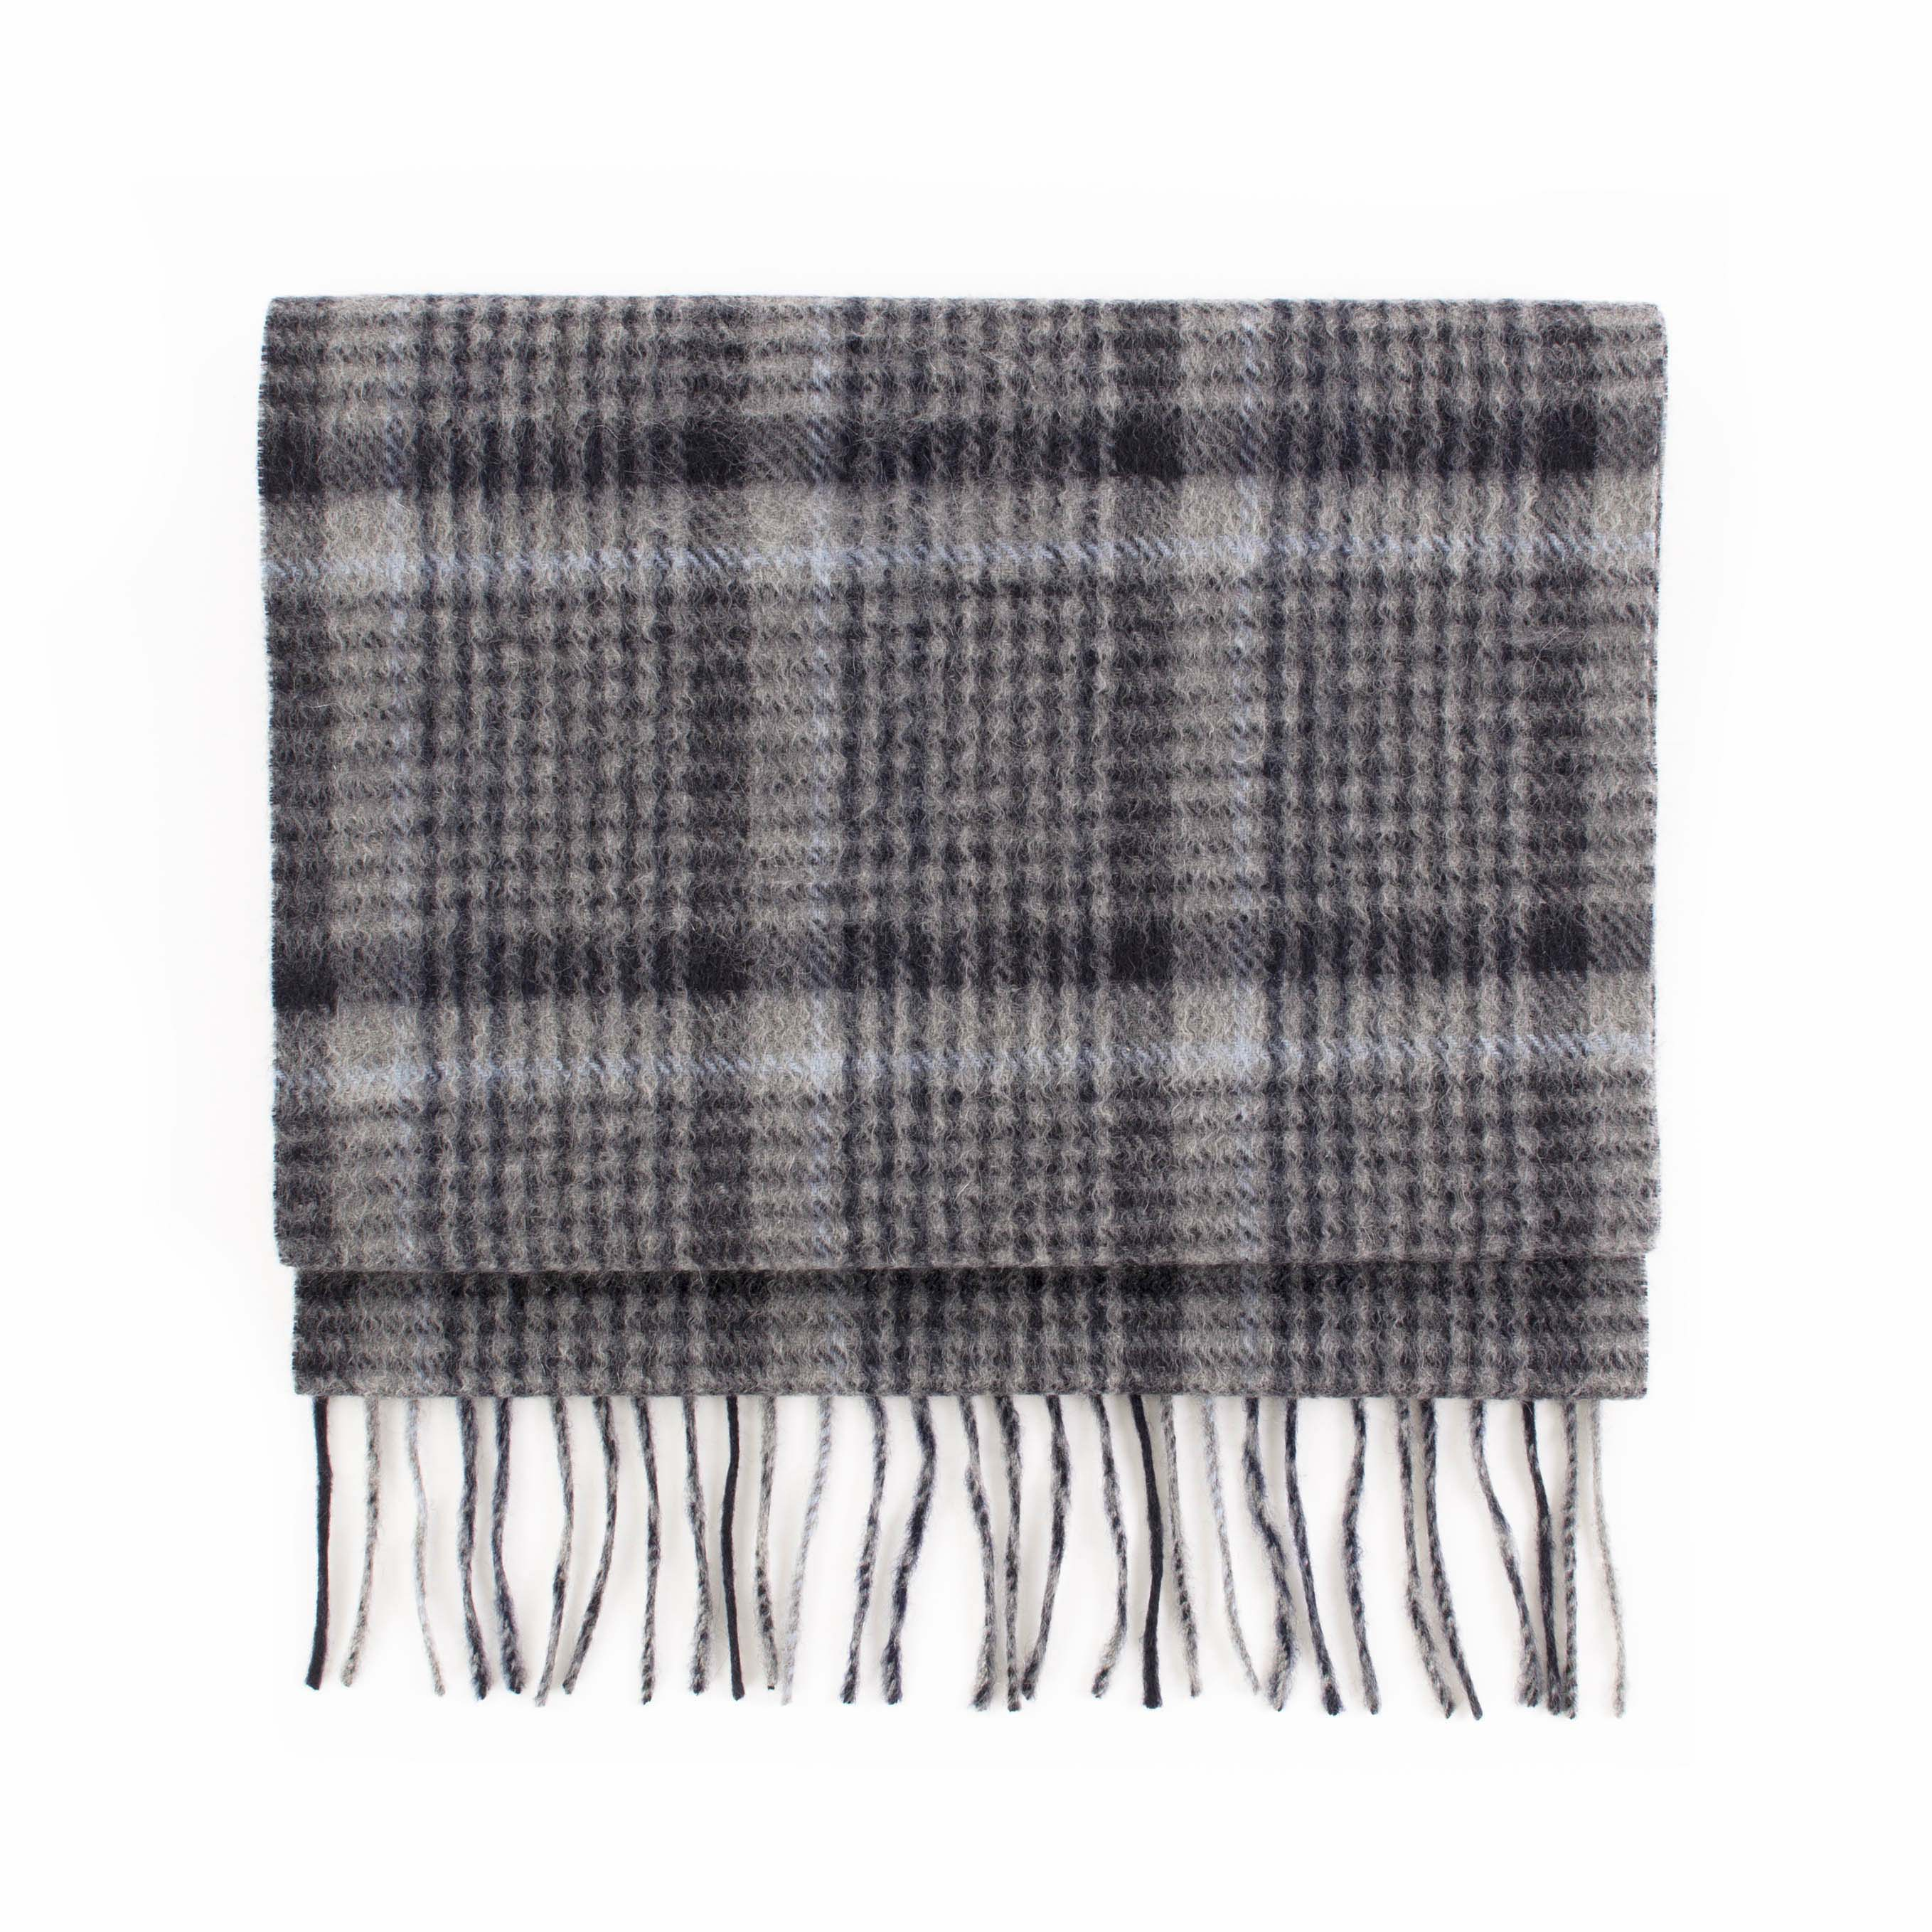 Cashmere scarf check, navy, grey